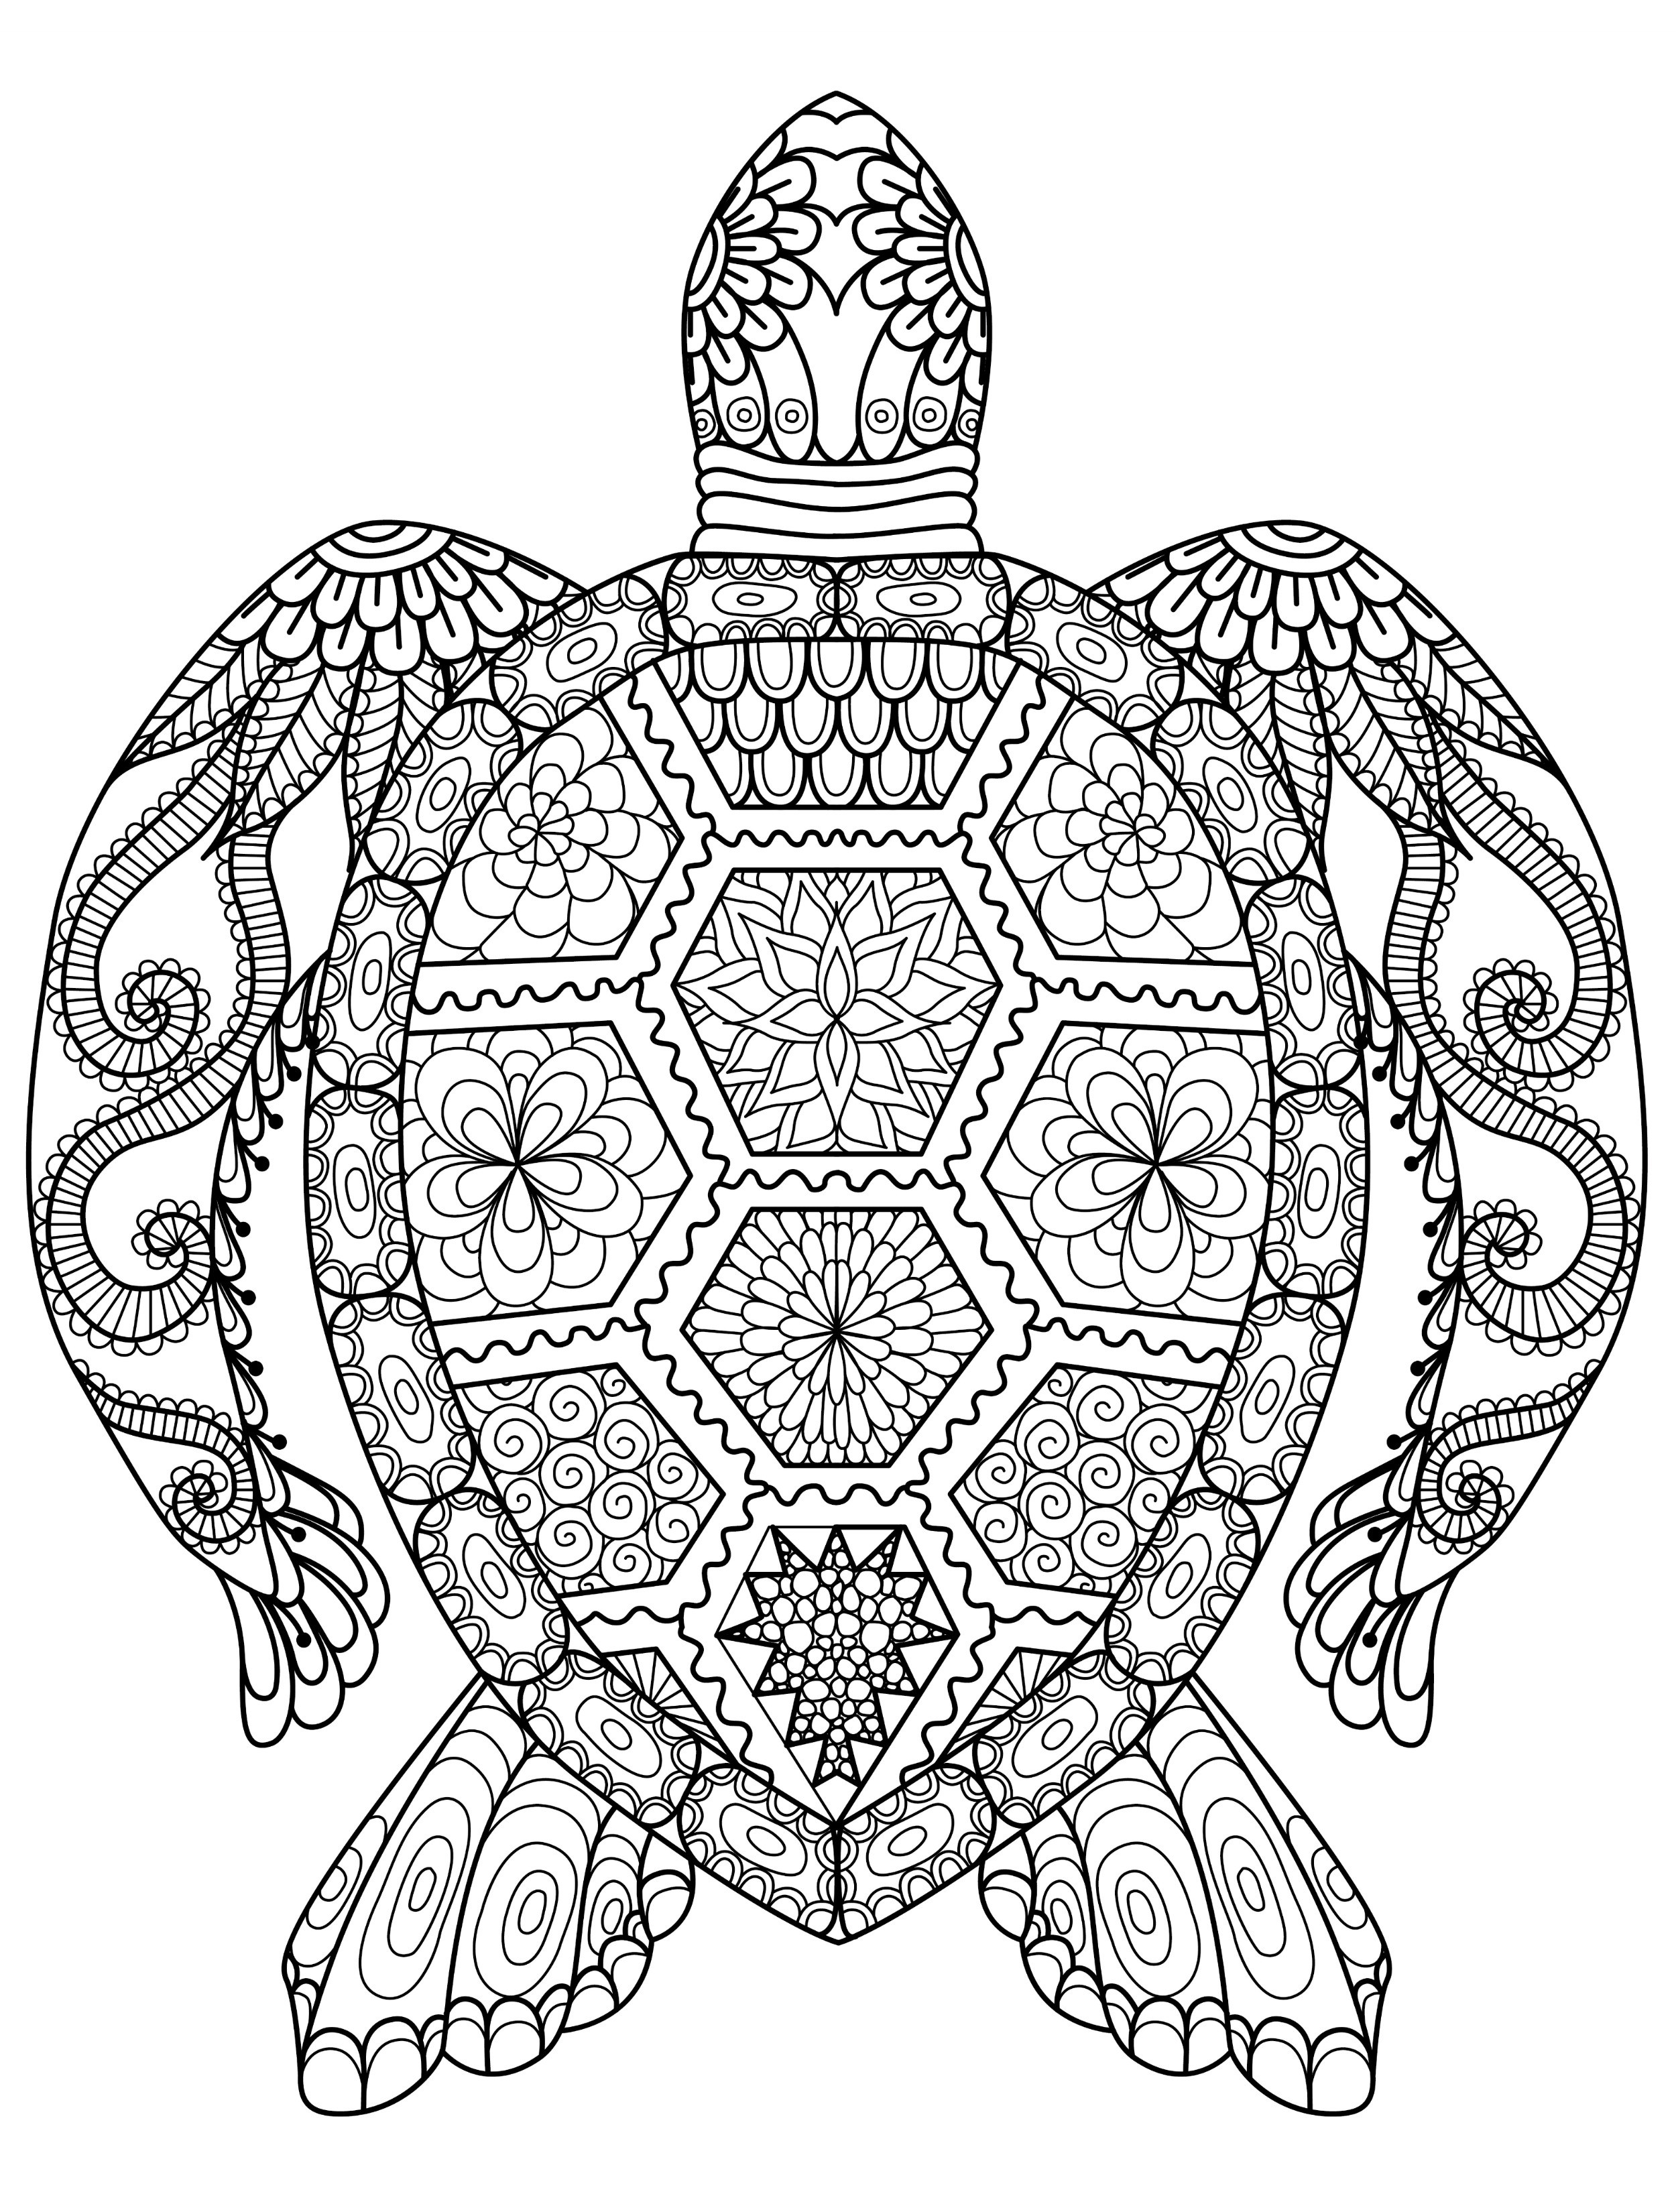 coloring printouts for adults adult coloring pages animals best coloring pages for kids printouts adults coloring for